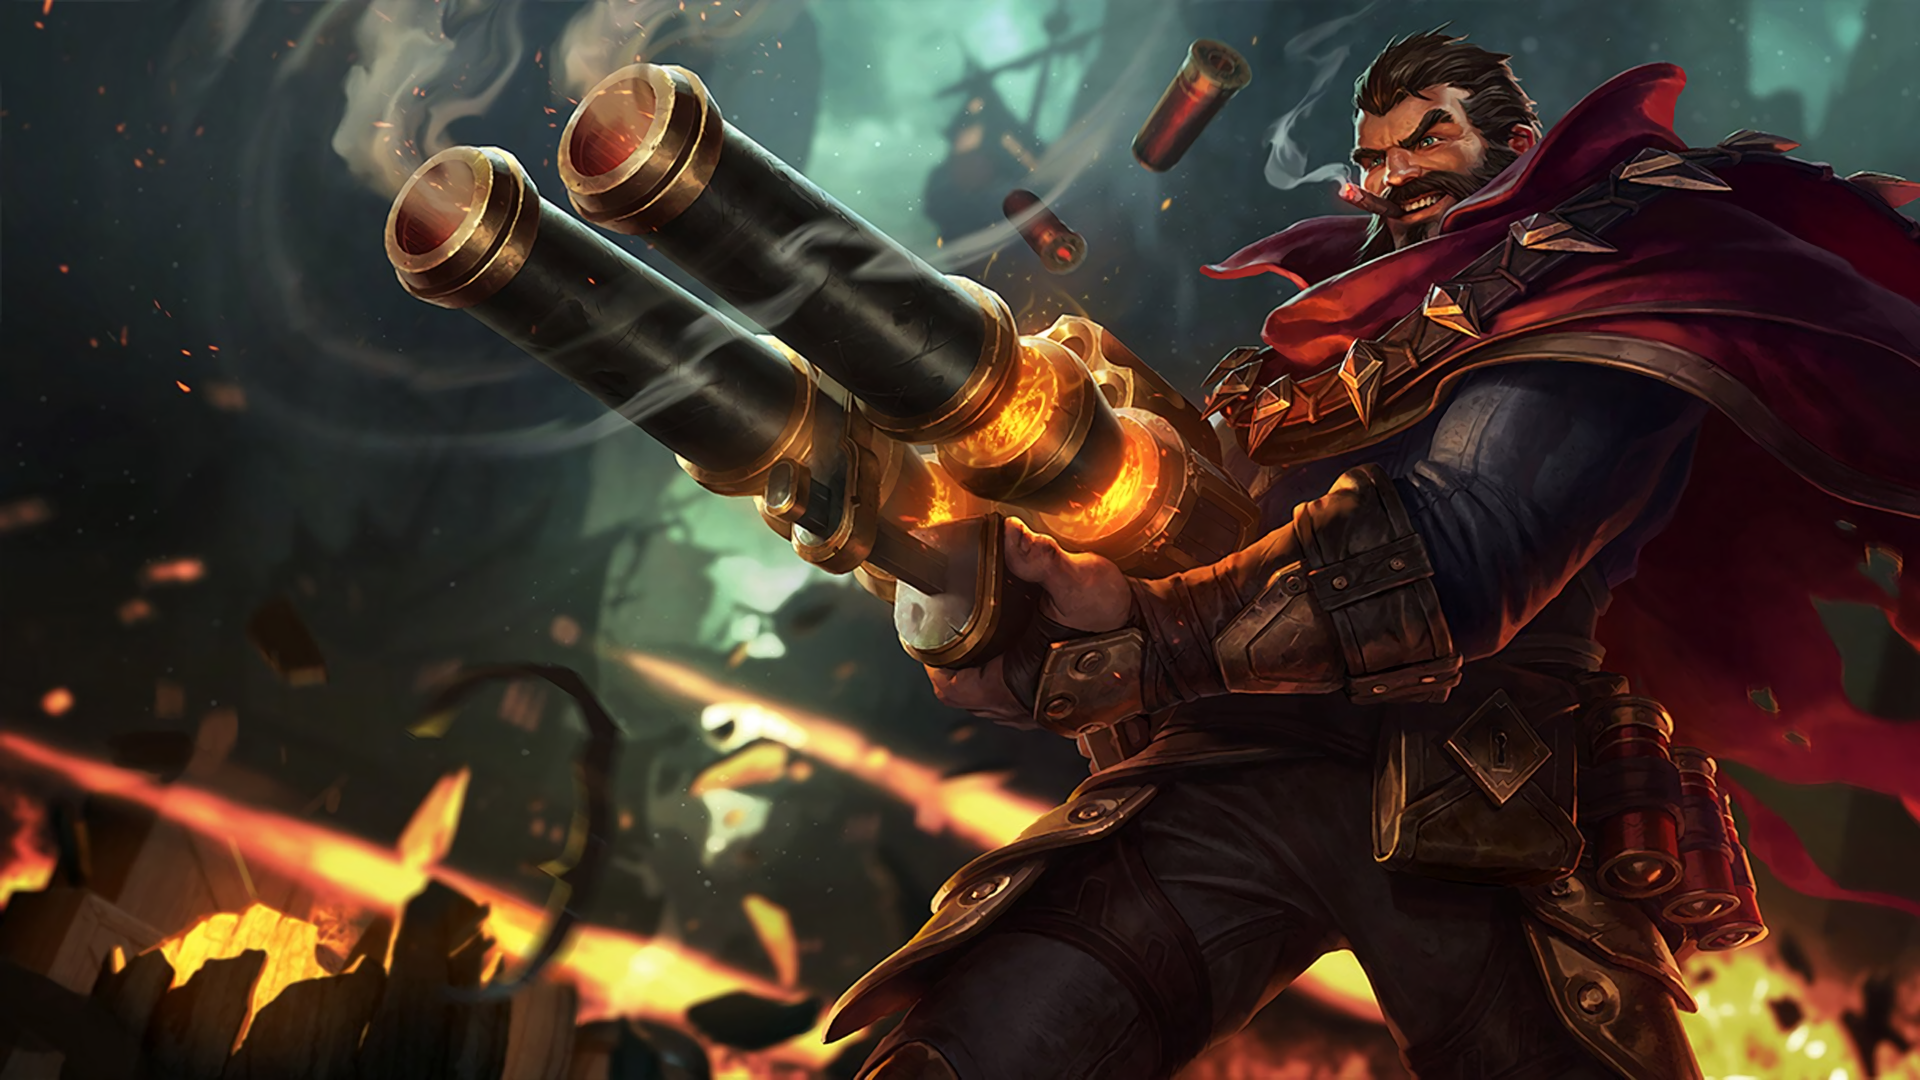 League Of Legends Graves Wallpapers High Quality Resolution Is Cool Wallpapers